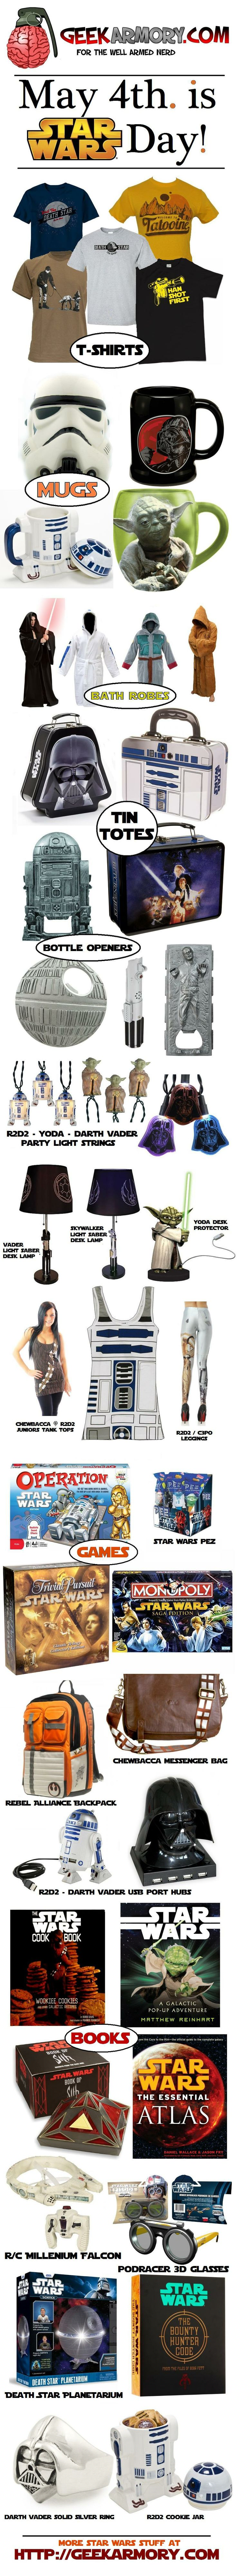 MAY THE FOURTH BE WITH YOU! - May 4th. is STAR WARS DAY! - http://geekarmory.com/?s=star+wars